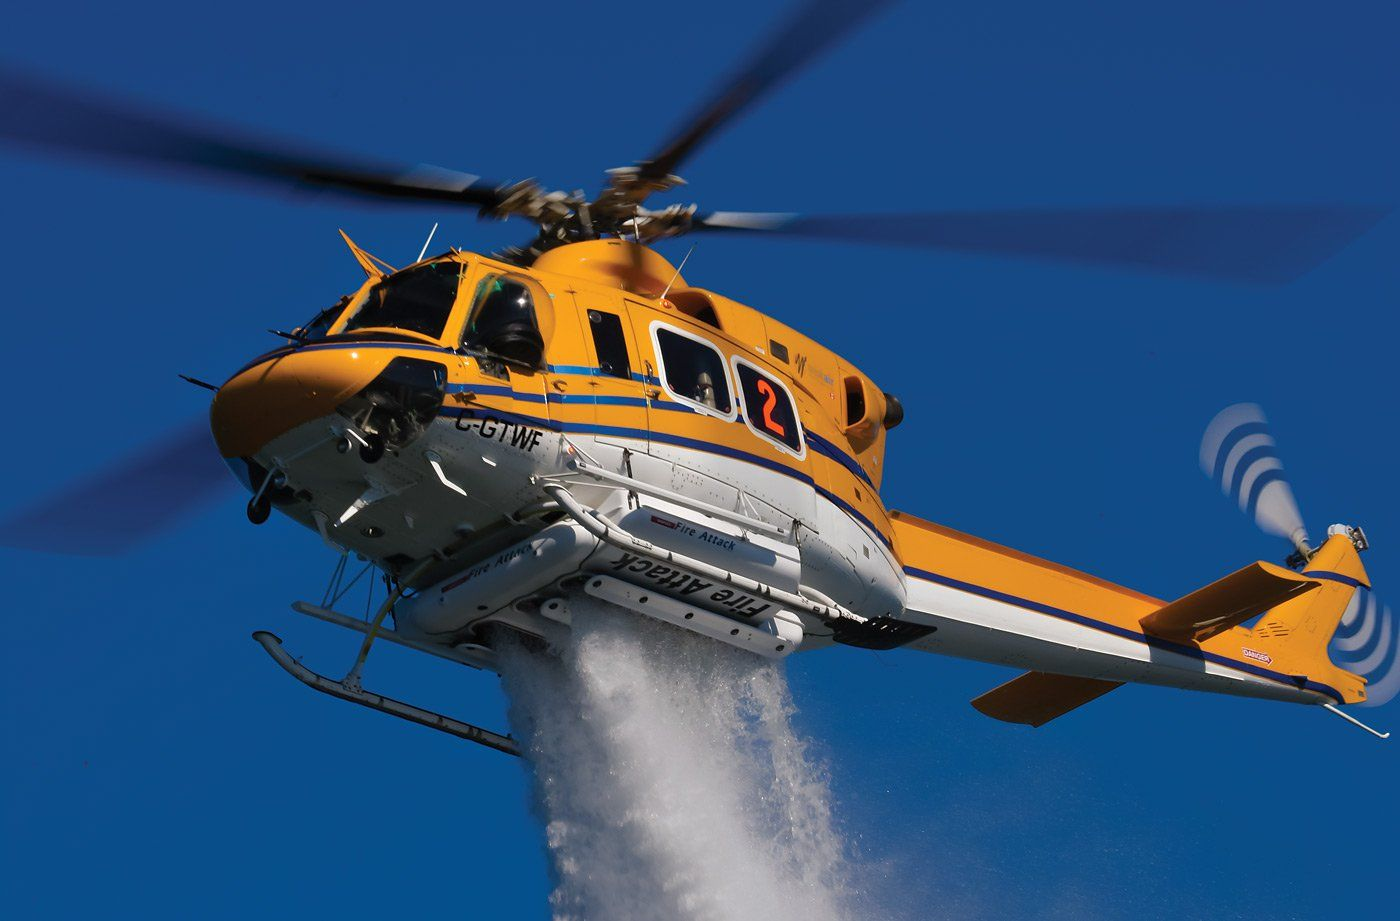 A wisk helicopter firefighting based thunder ontario